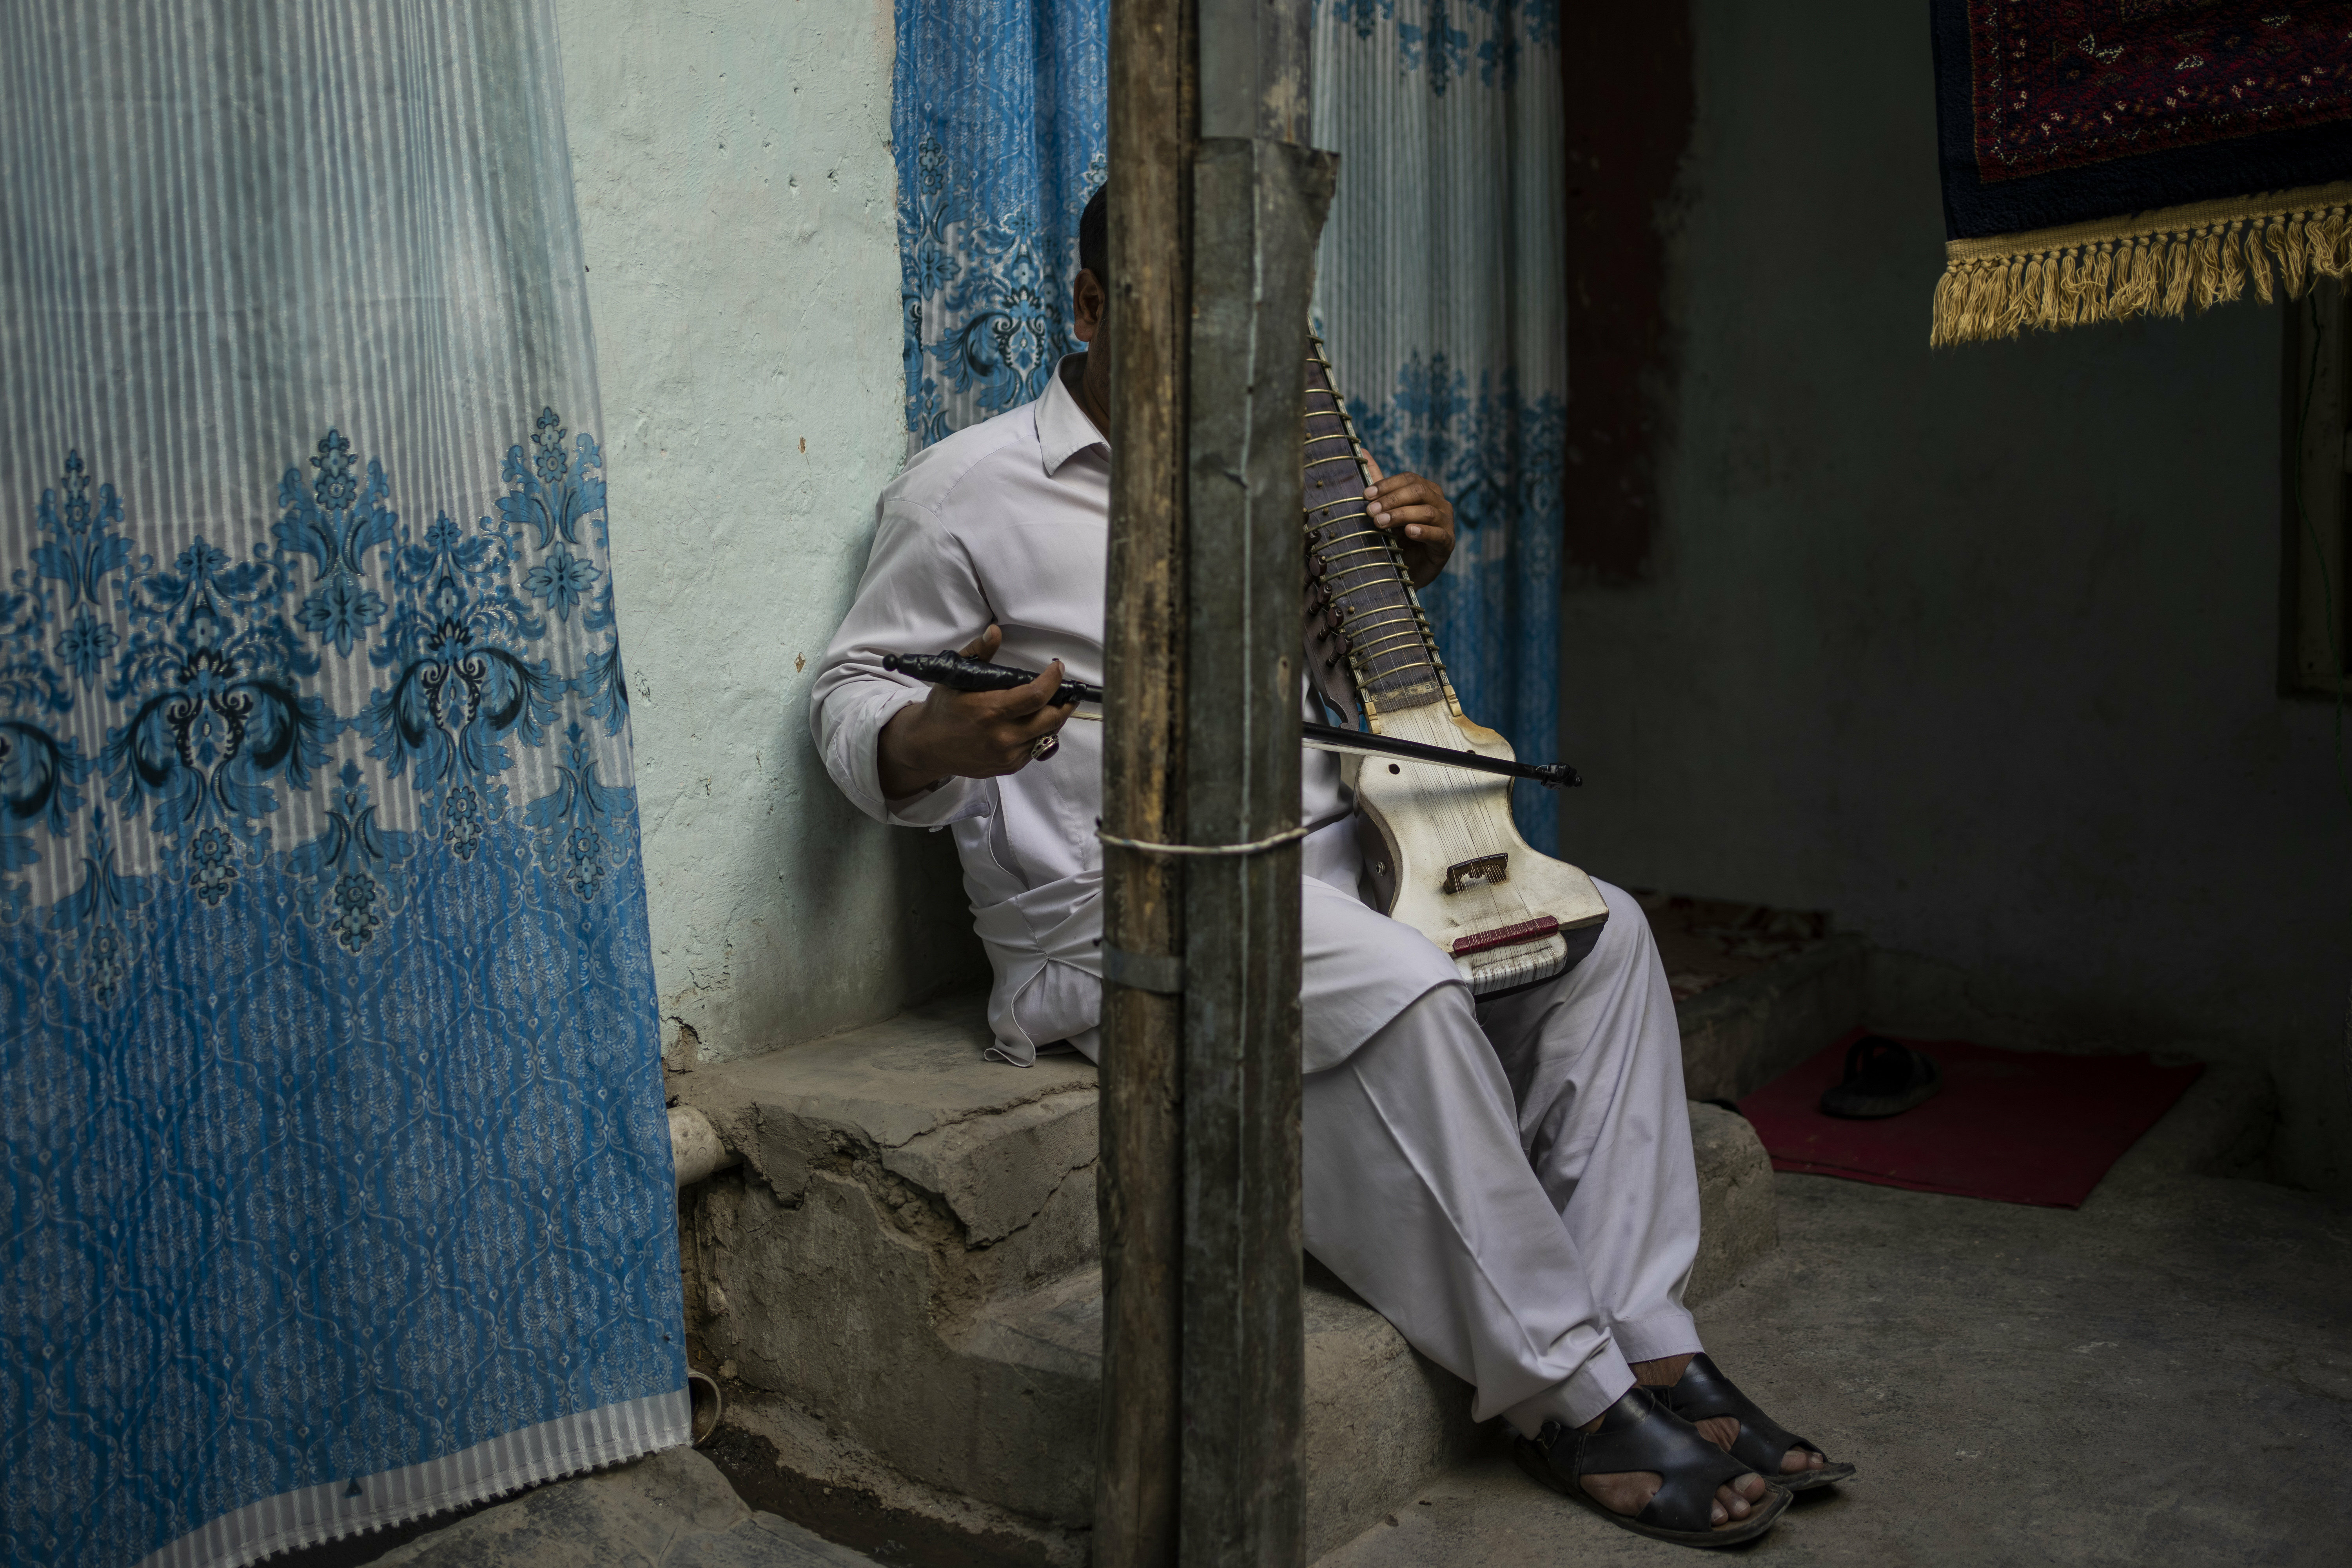 An Afghan musician poses for a portrait with his dilruba in Kabul, Afghanistan, Saturday, Sept. 18, 2021. About a month after the Taliban seized power in Afghanistan, the music is starting to go quiet. The last time that the militant group ruled the country, in the late 1990s, it outright banned music. (AP Photo/Bernat Armangue) — Copyright 2021 The Associated Press. All rights reserved